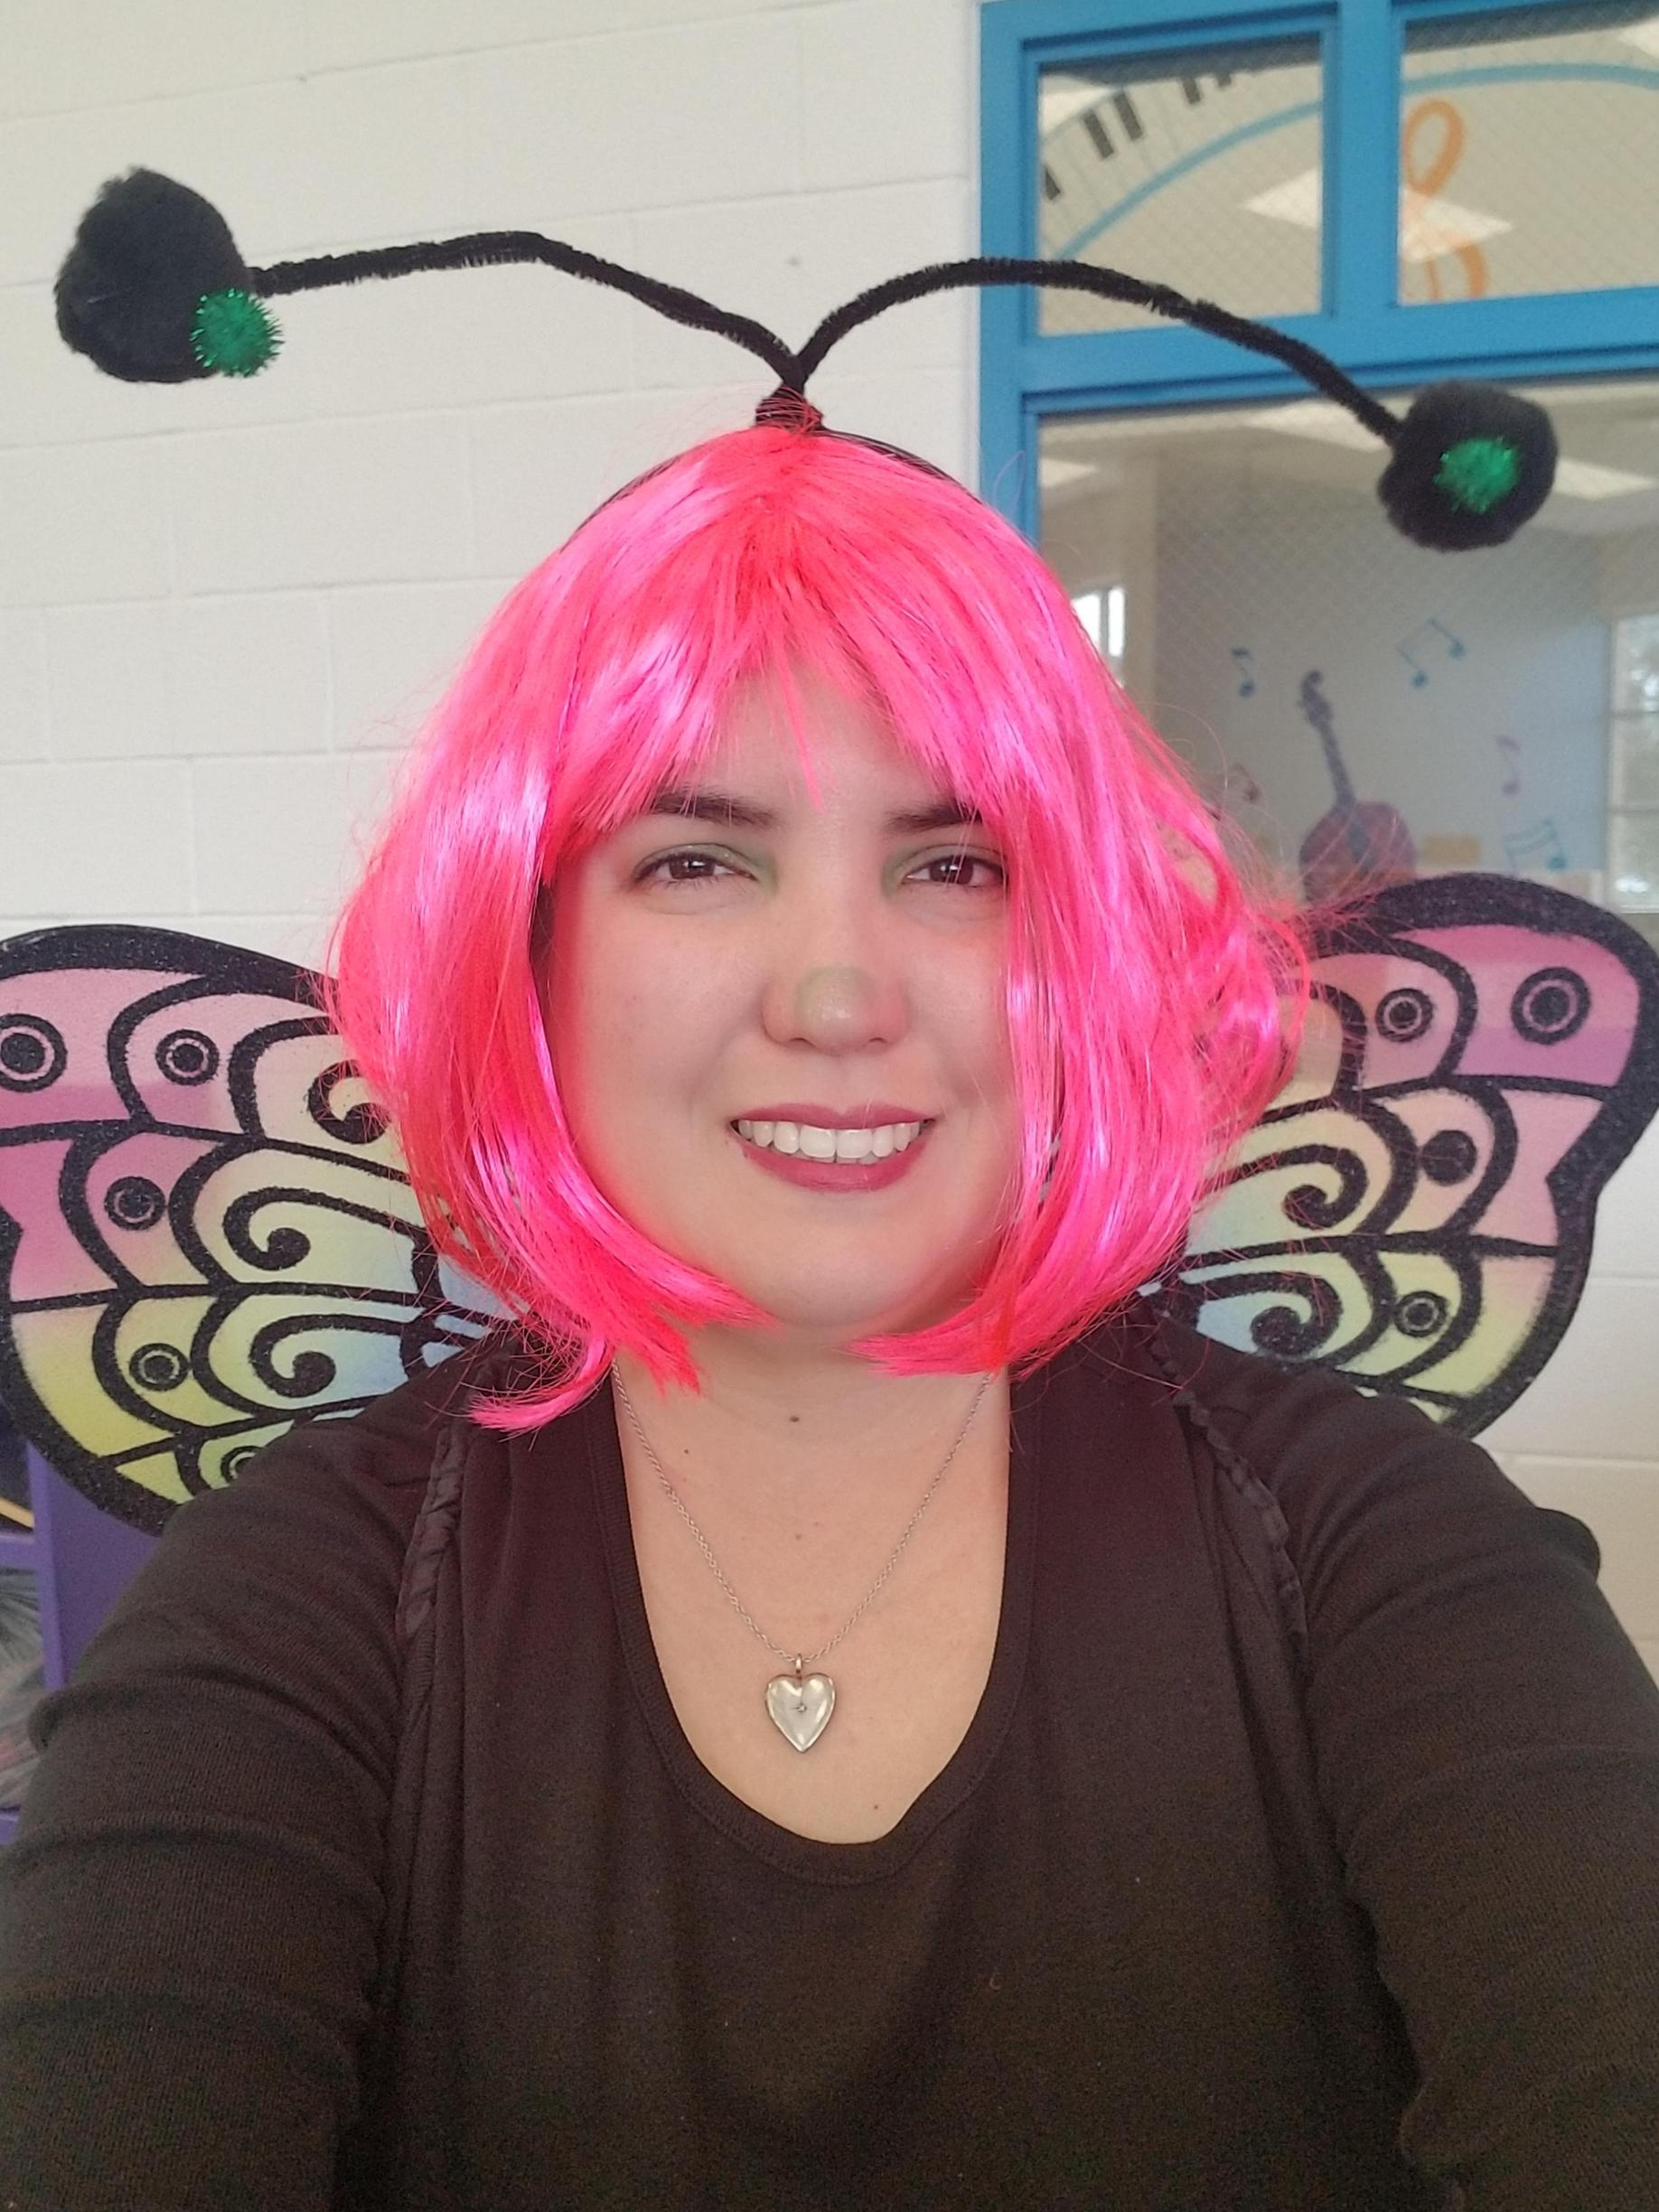 A mystical butterfly has been spotted at the STEAM Academy book fair.